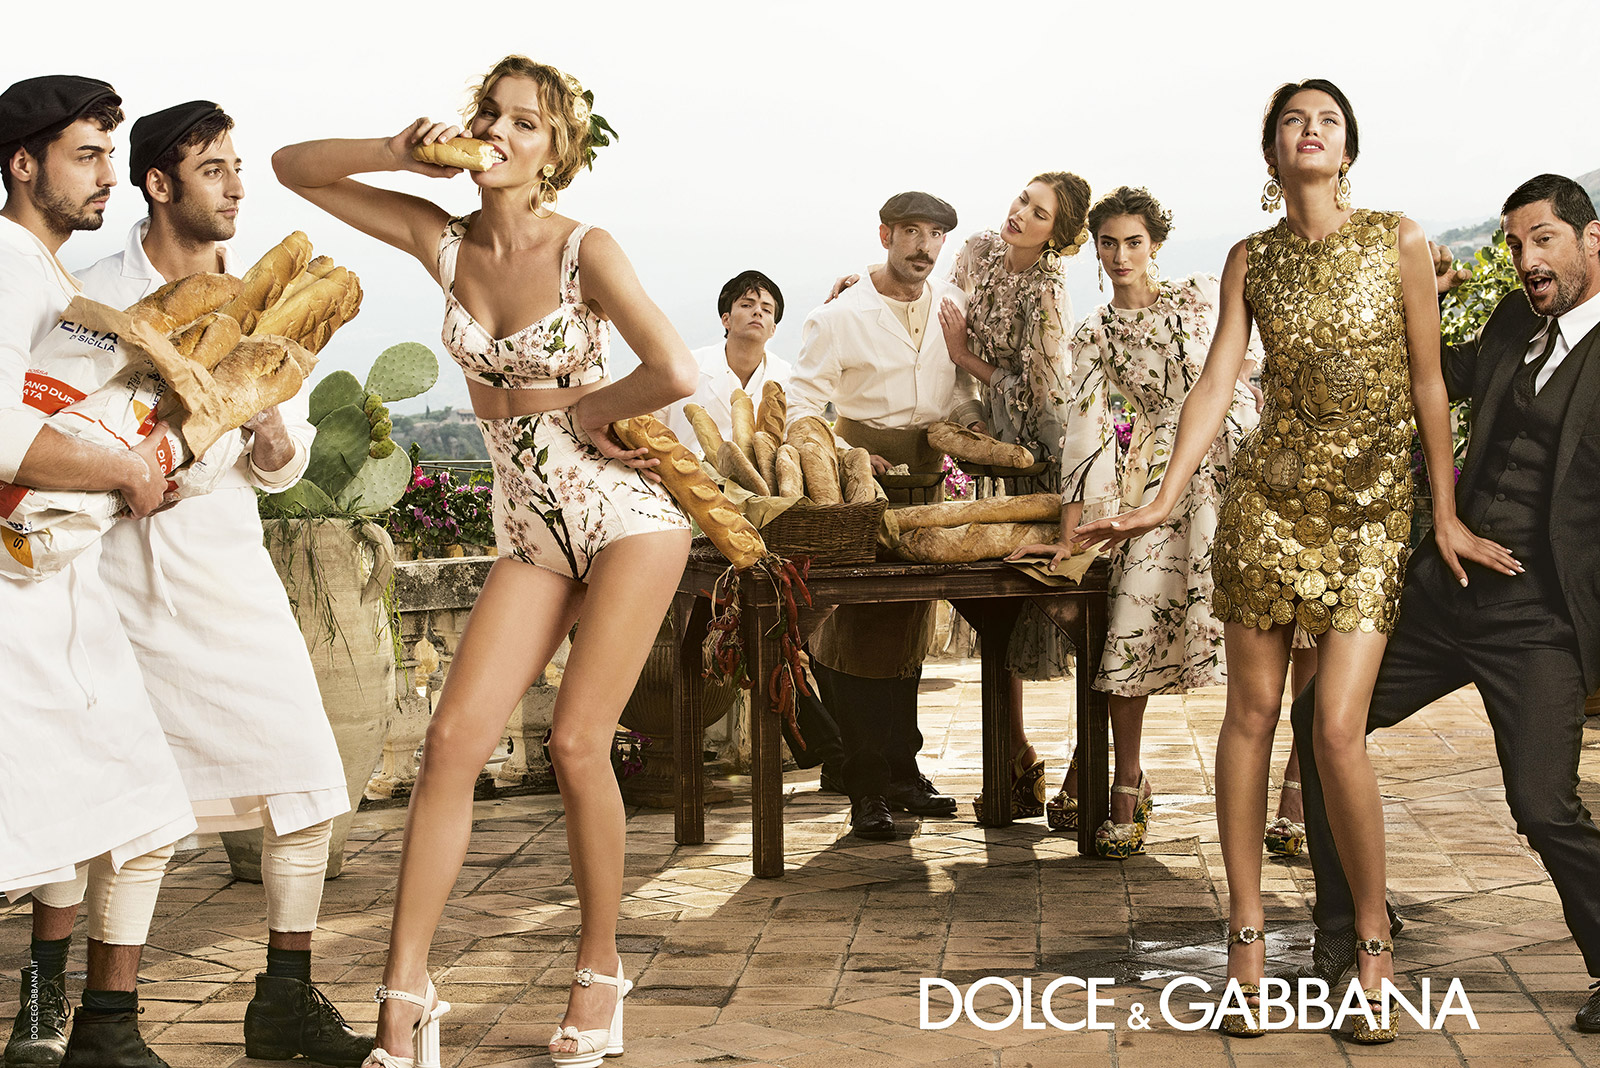 b521e48c1cc dolce-and-gabbana-ss-2014-womens-advertising-campaign-